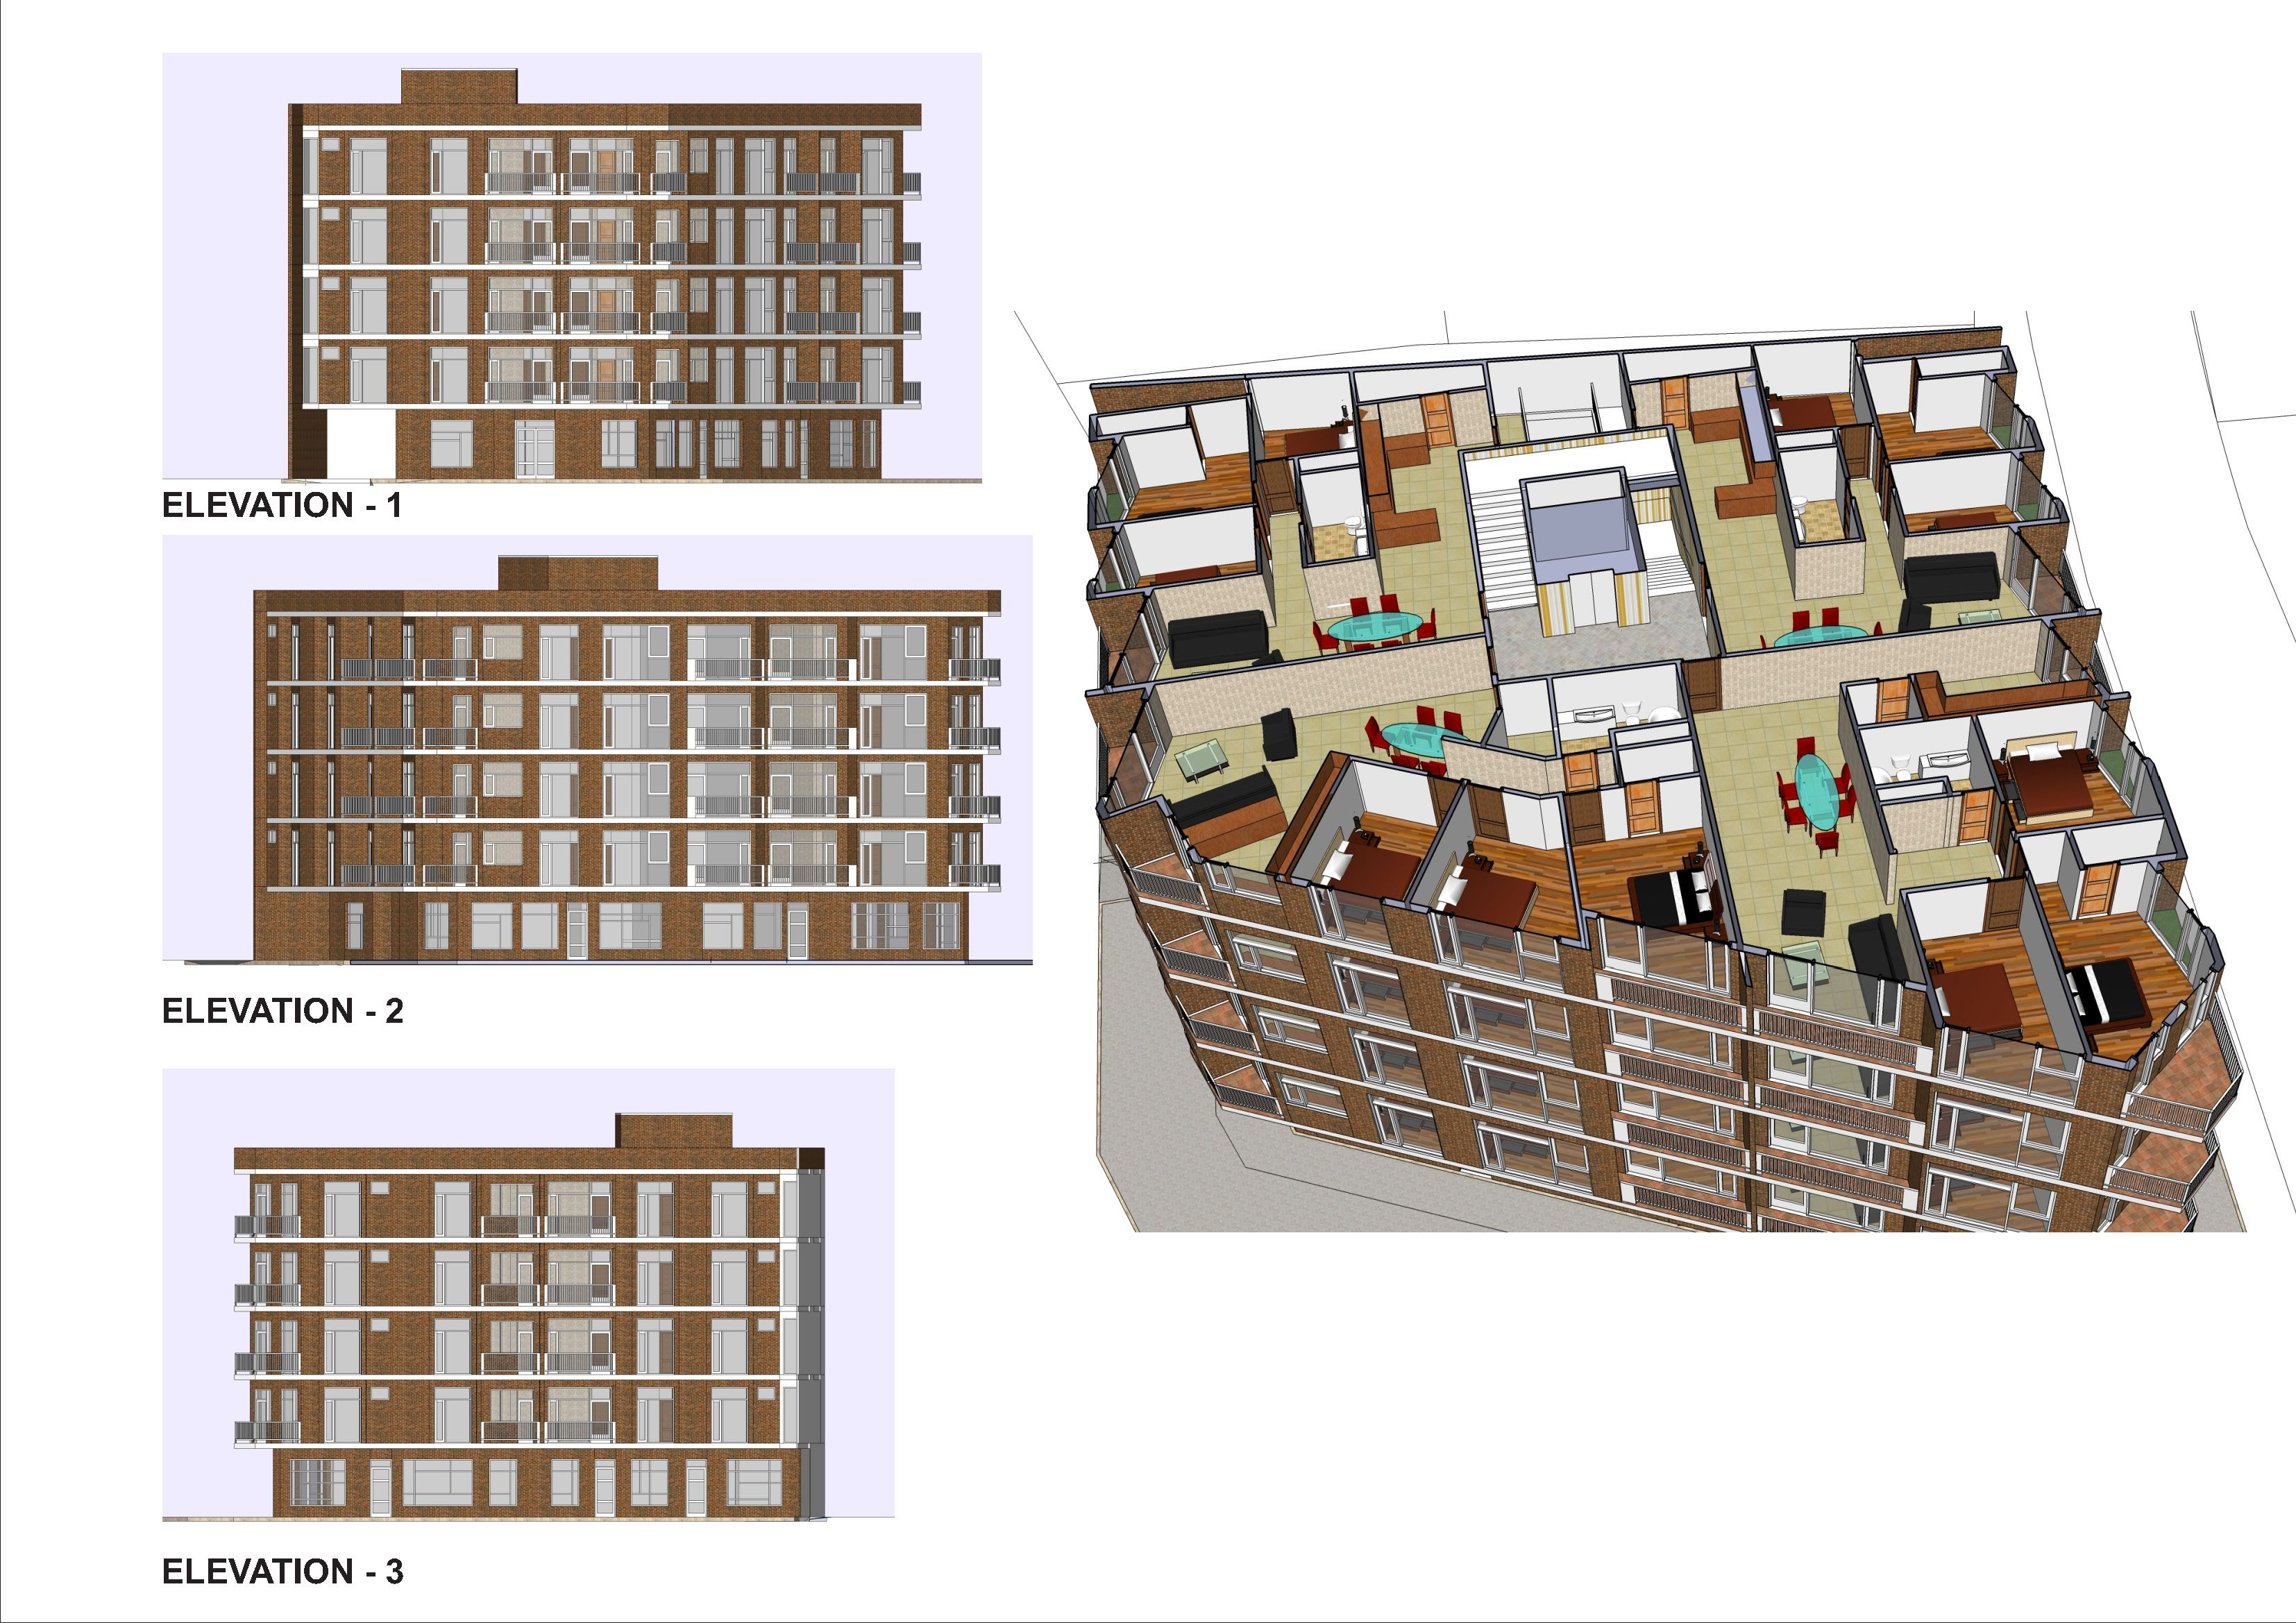 Apartment building plans location aksaray turkey new for Apartment building plans 6 units